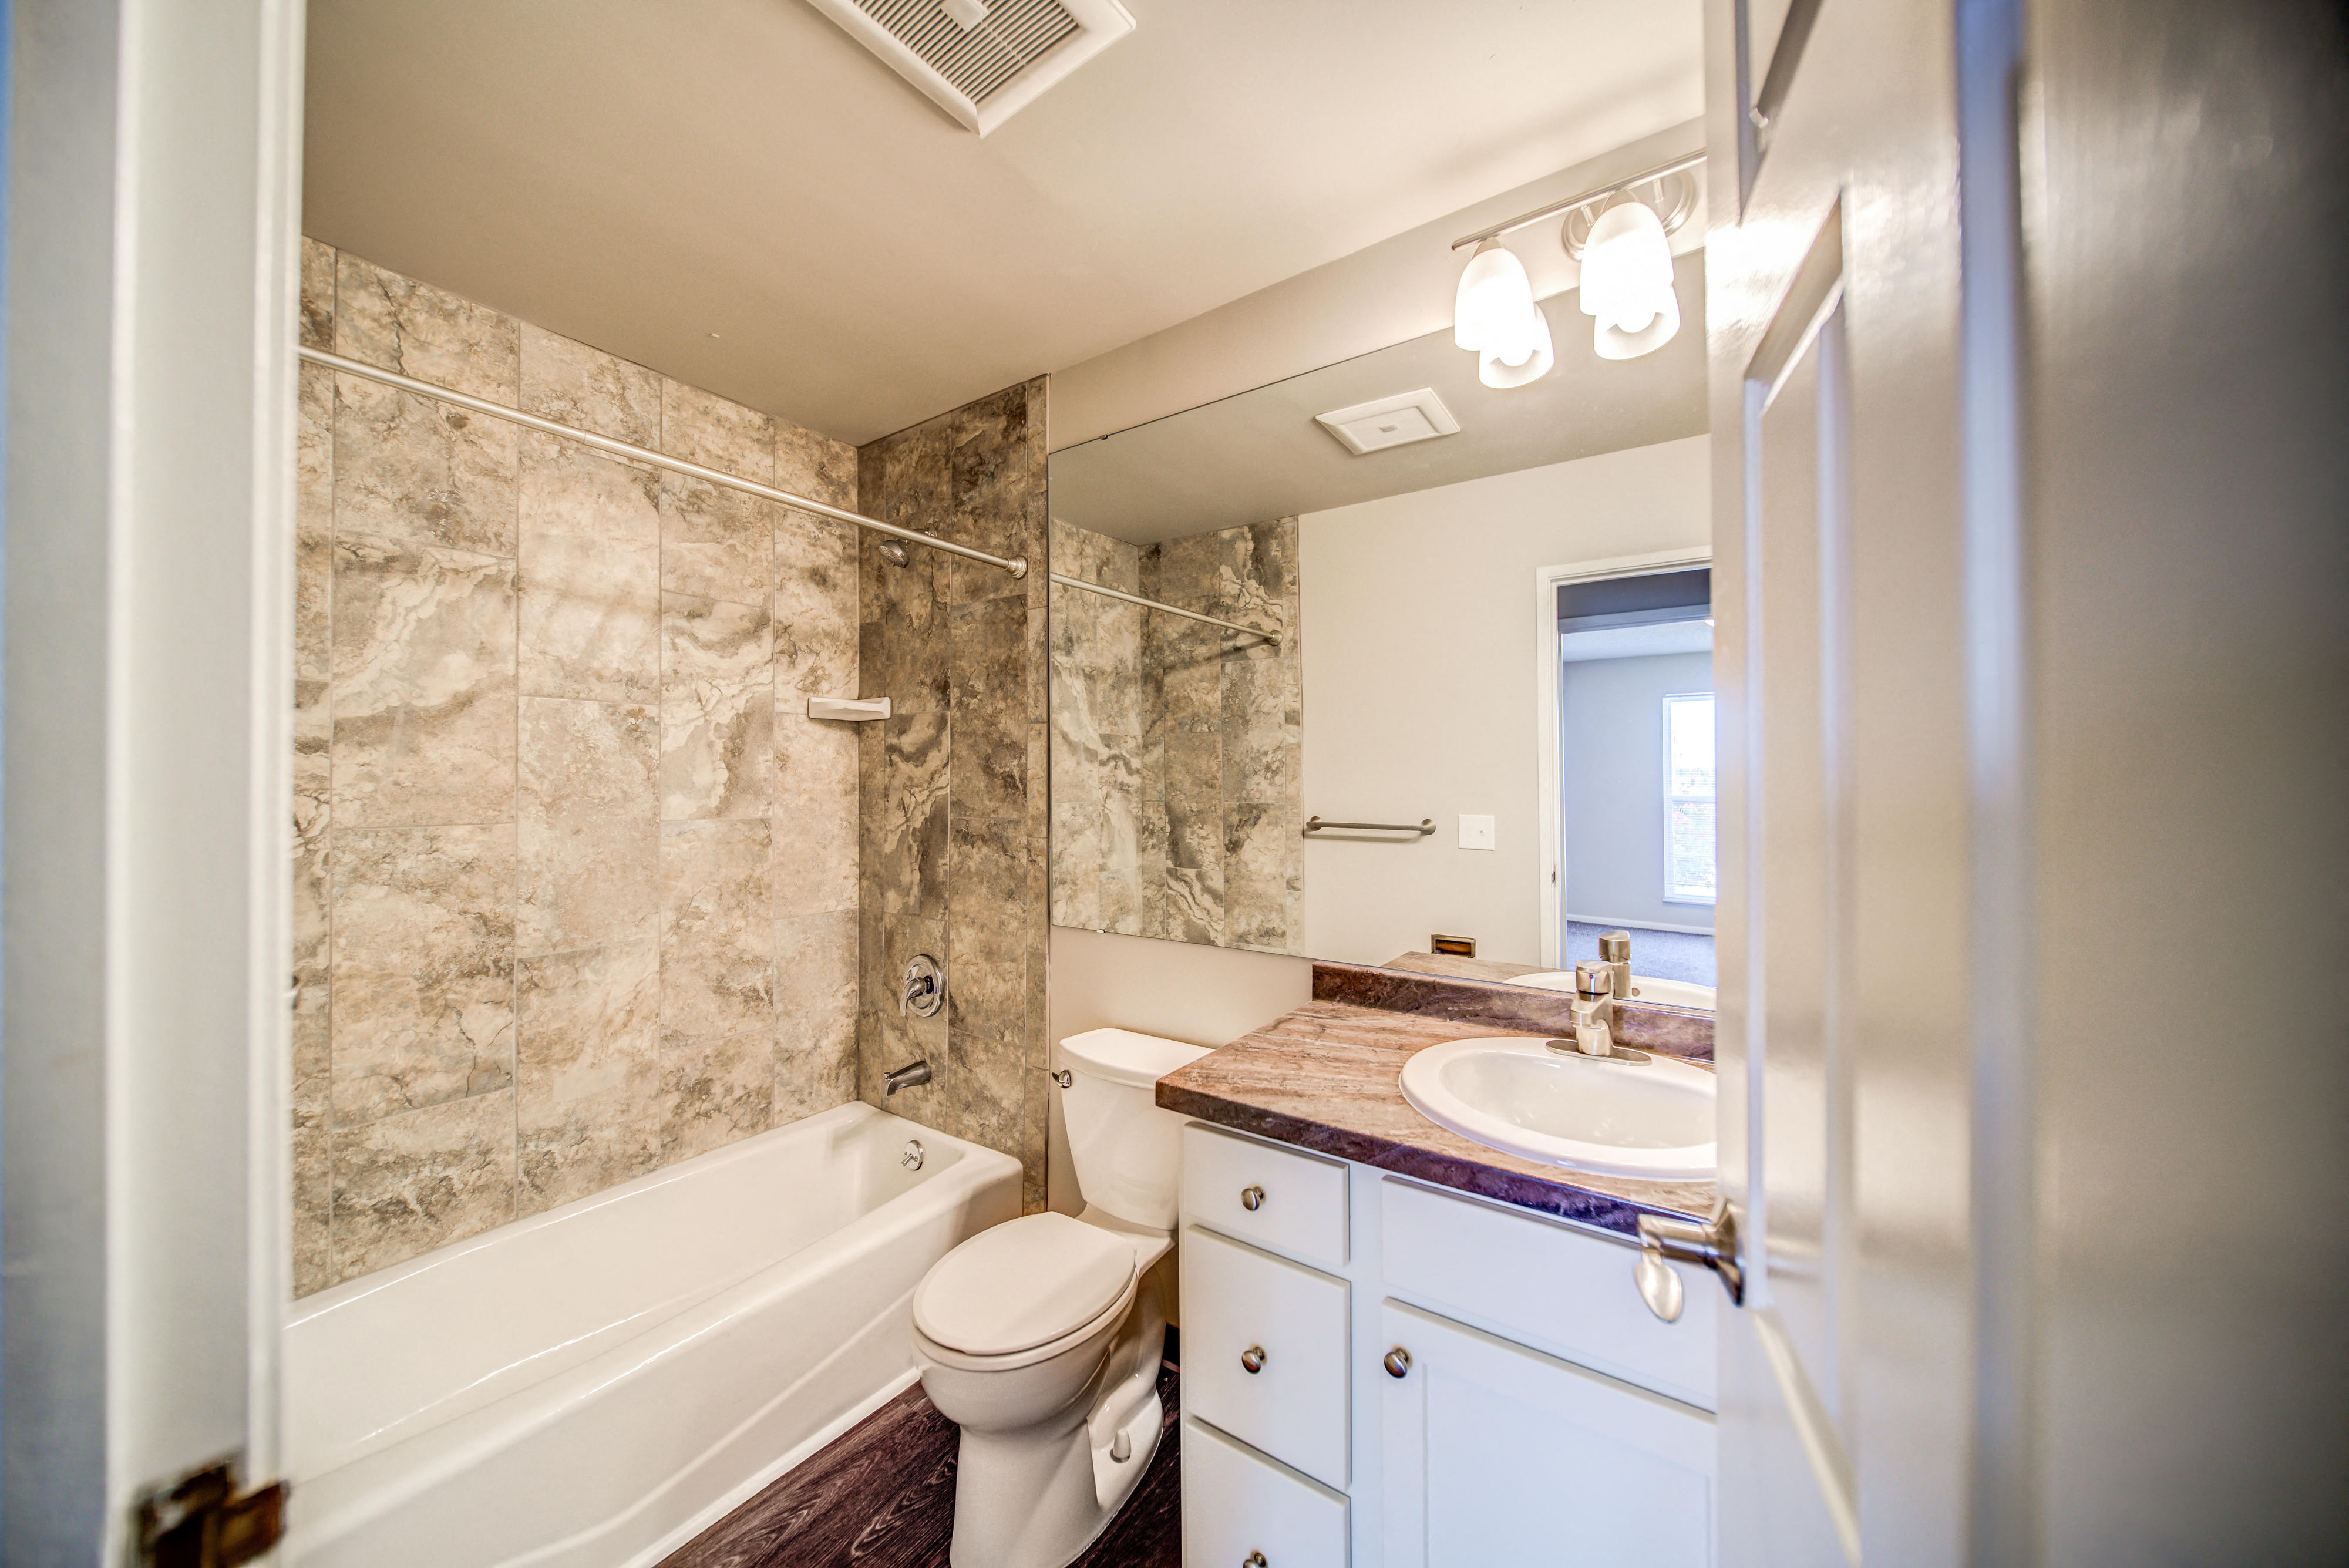 Tiled Bathroom with Tub and White Cabinets